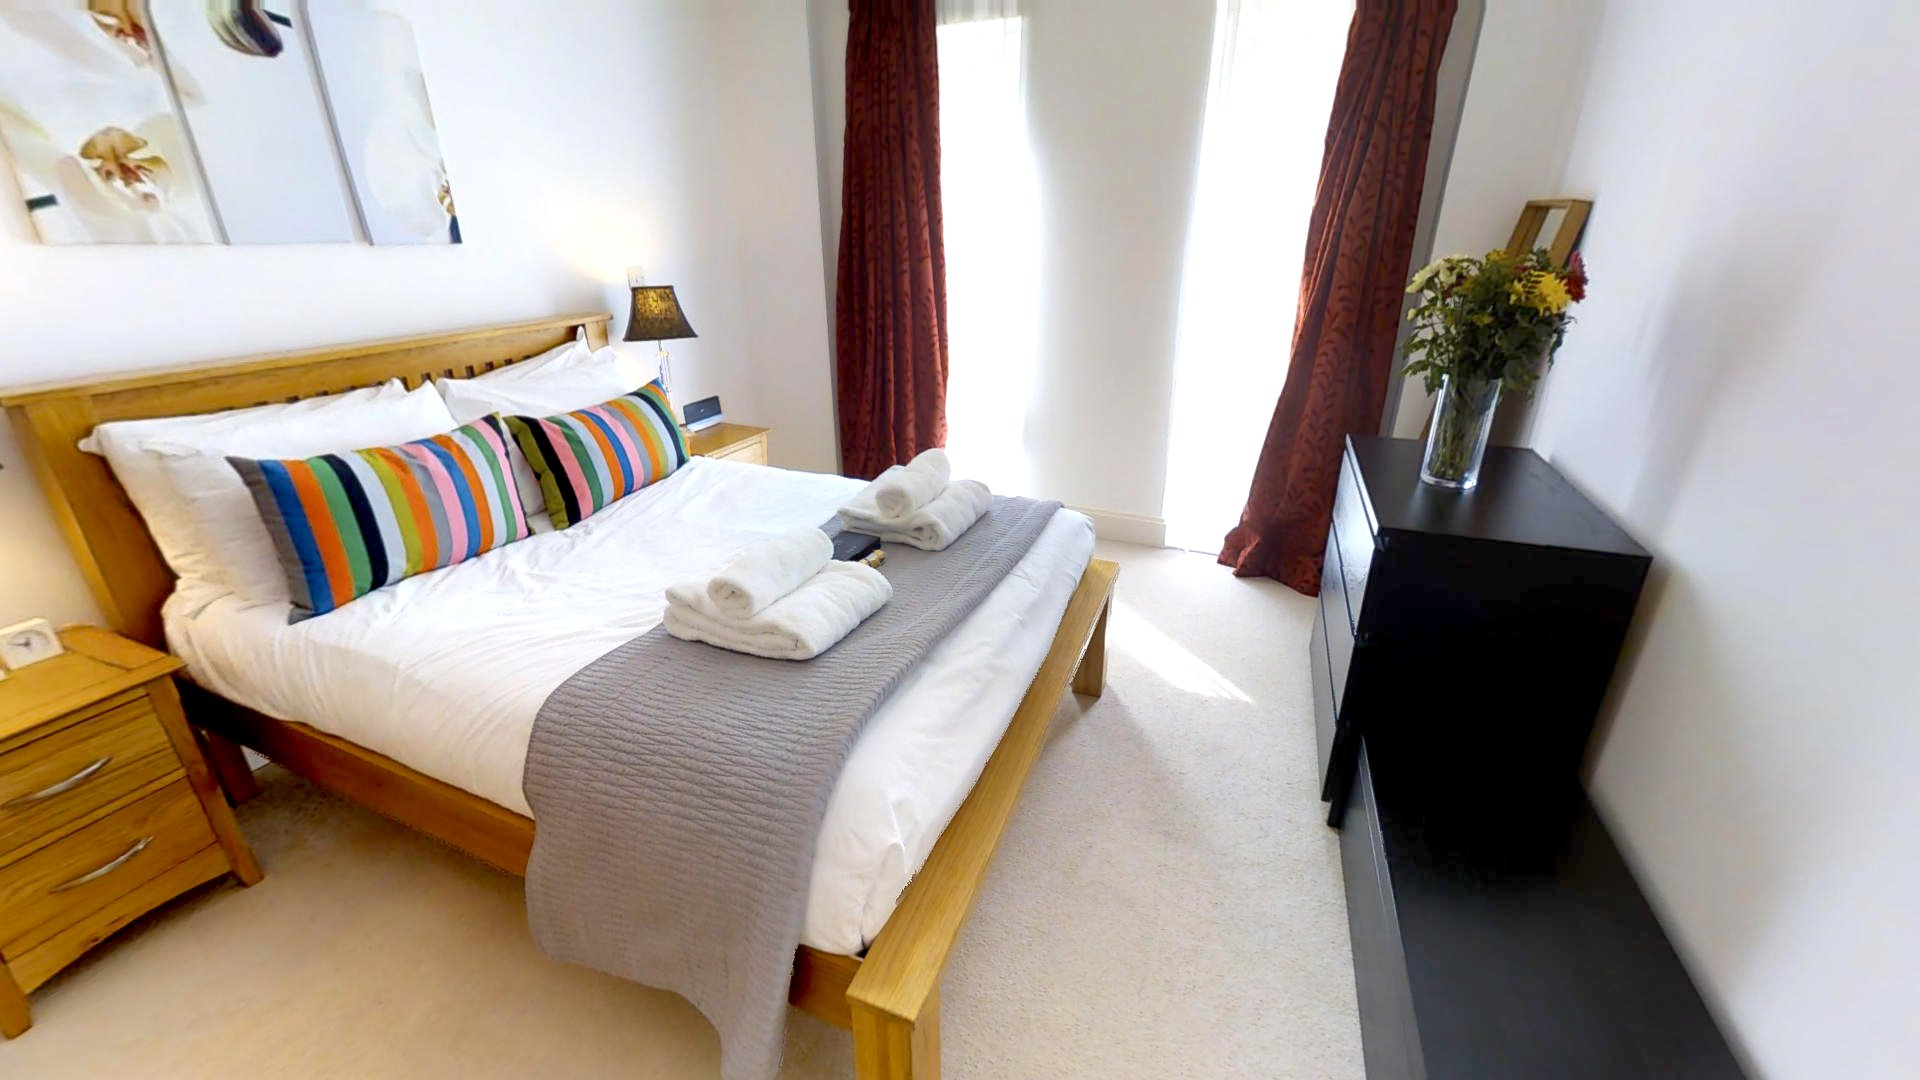 Serviced-Accommodation-Cambridge- -Stylish-Short-let-apartments- -Free-Wifi -24h-reception- -Fully-equipped-kitchen- -0208-6913920 -Urban-Stay